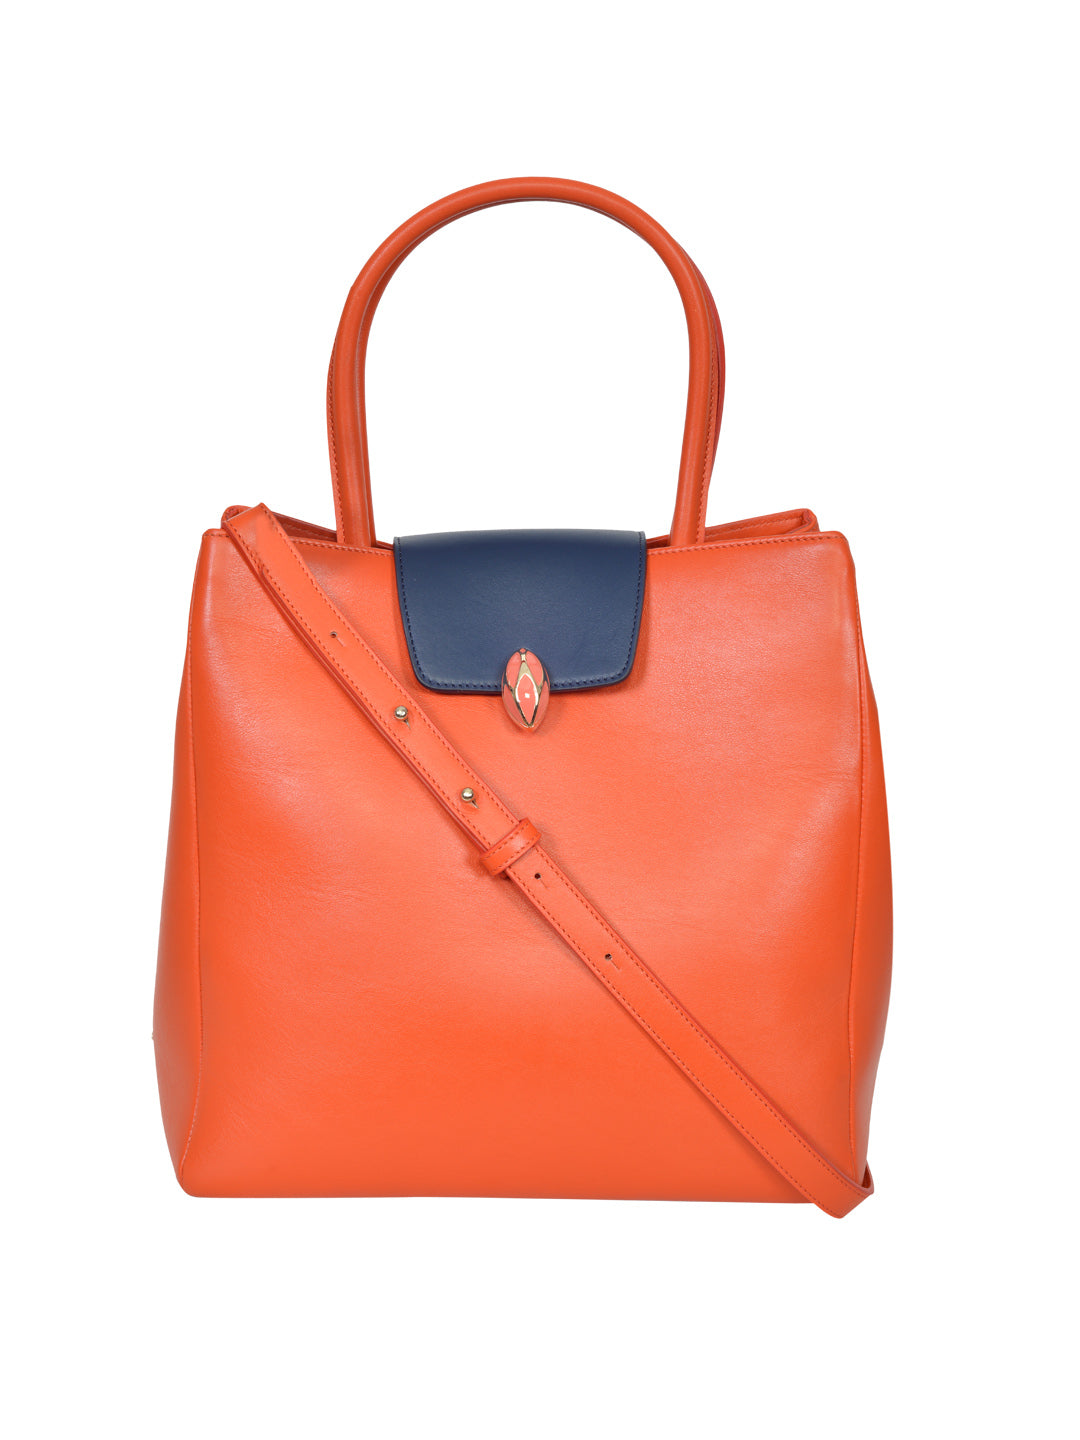 F.E.V BY FRANCESCA VERSACE BI-COLOR LEATHER CITY TOTE BAG